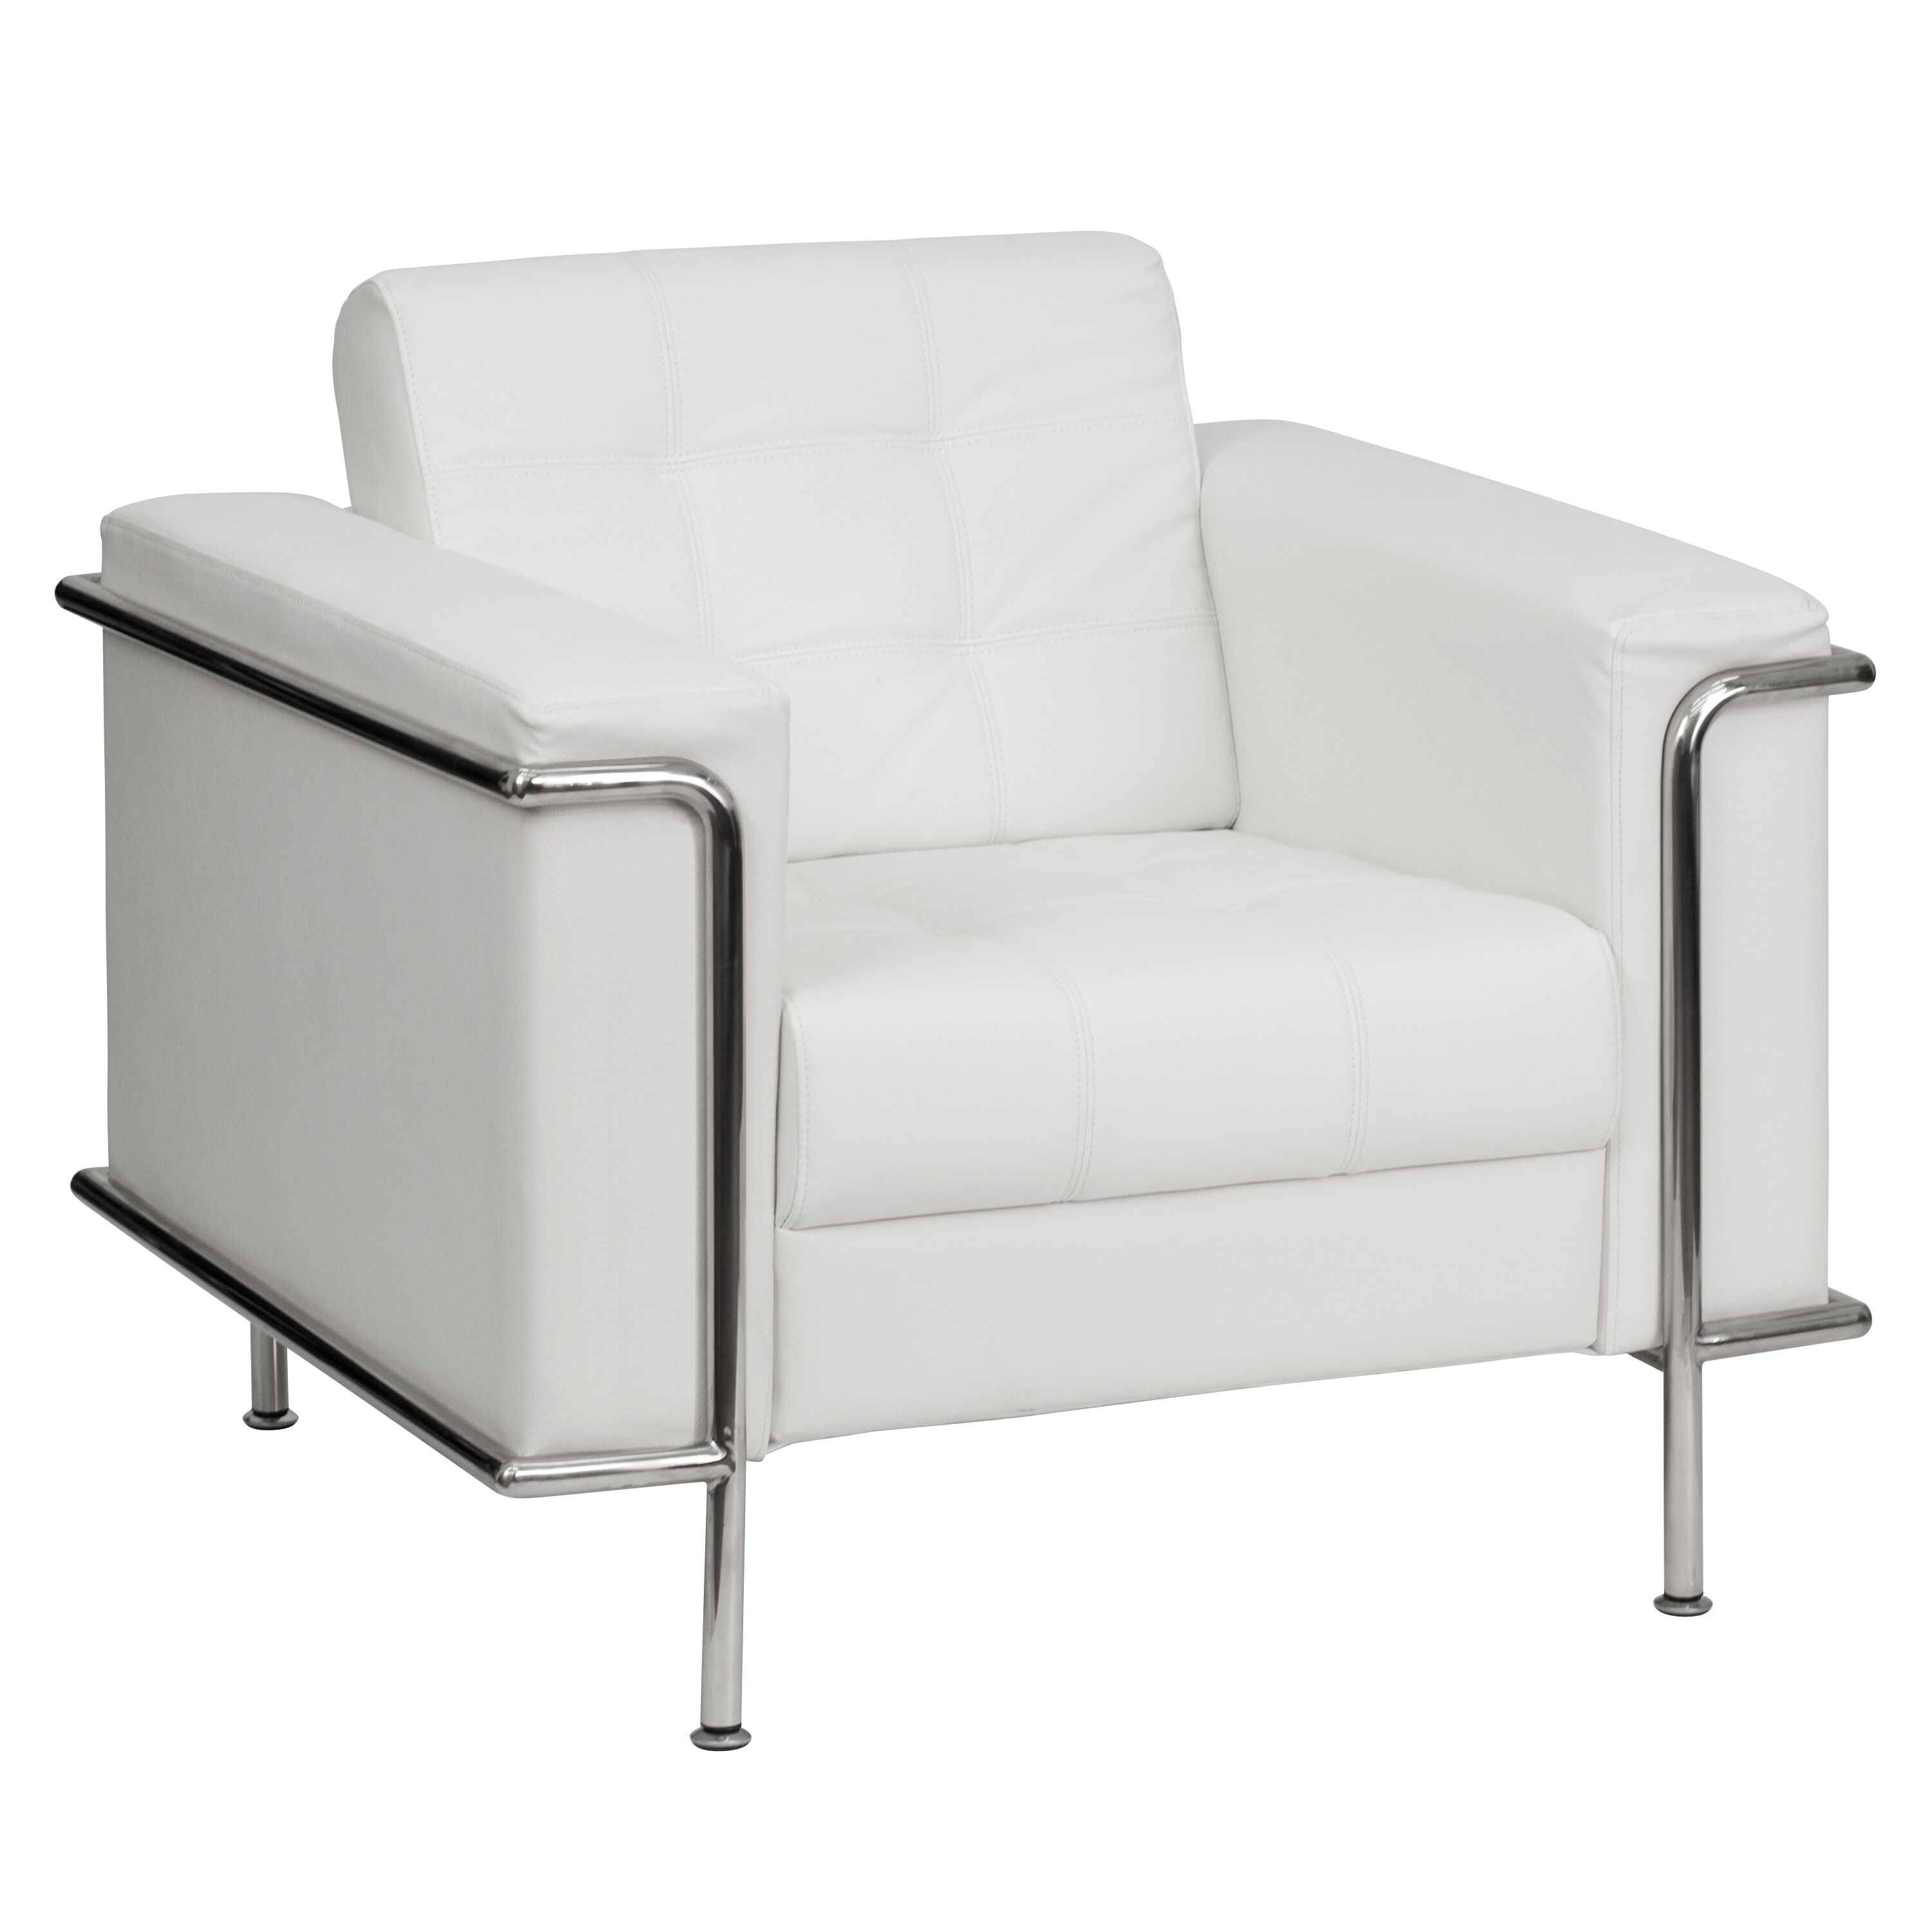 White Leather Chairs White Leather Chair Zb Lesley 8090 Chair Wh Gg